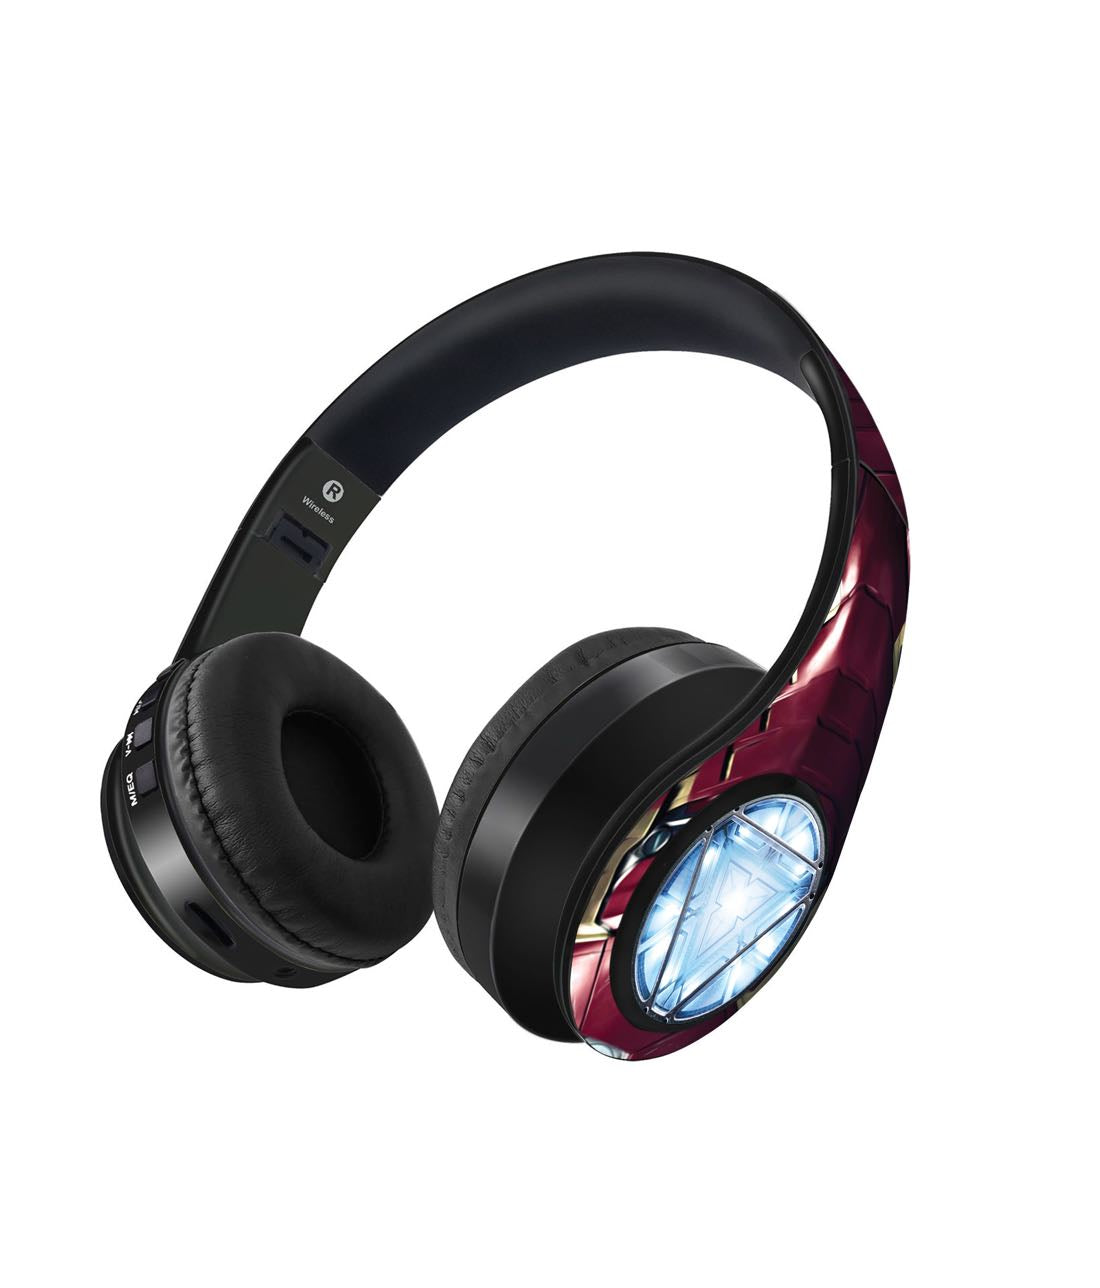 Suit up Ironman - Decibel Wireless On Ear Headphones -Macmerise - India - www.superherotoystore.com